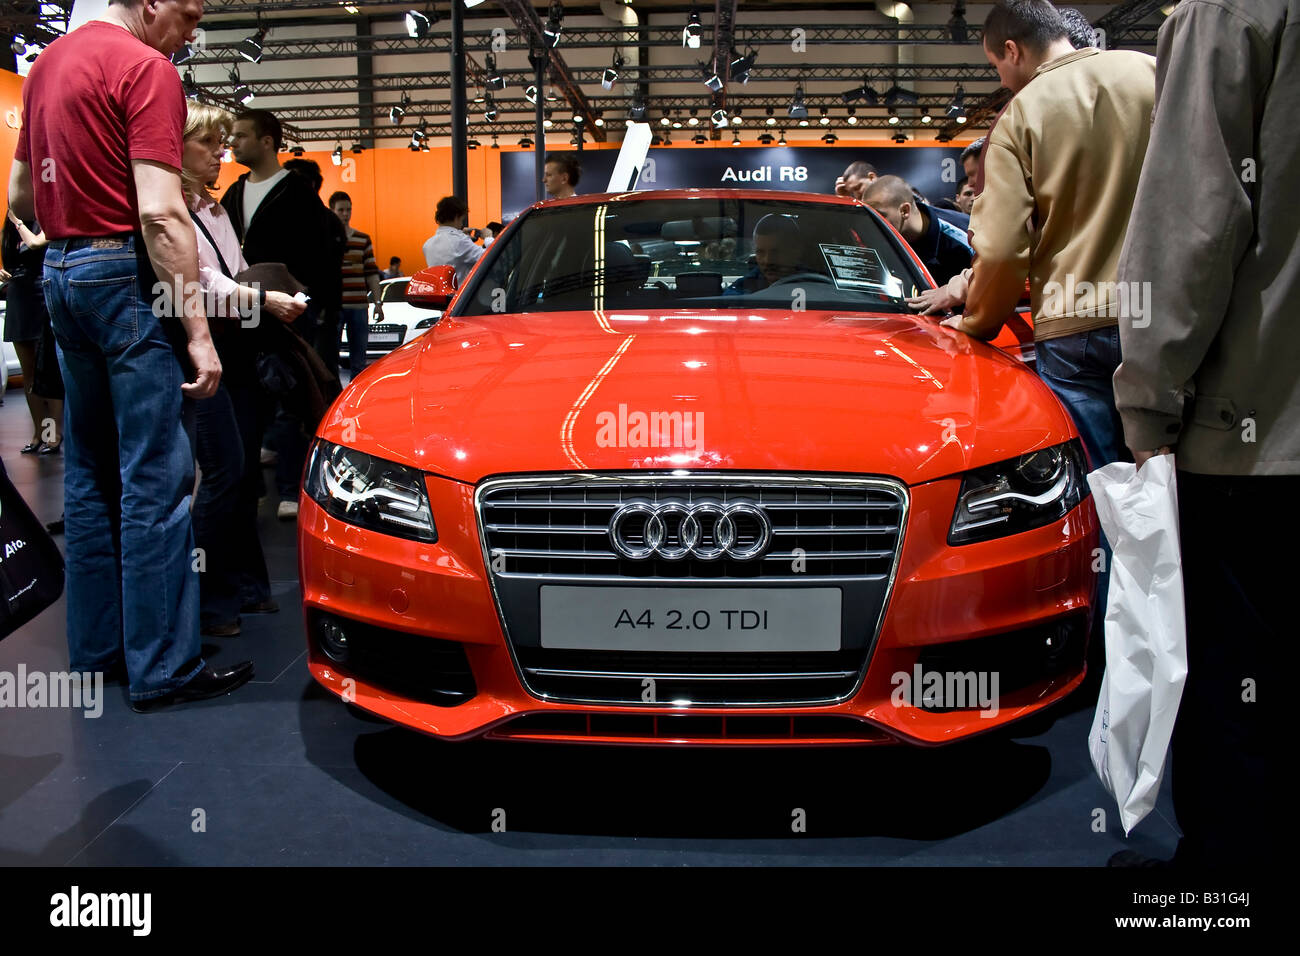 Audi A4 2,0 TDI at Zagreb Auto Show in Croatia from 28.3.2008. -  06. 04. 2008. - Stock Image